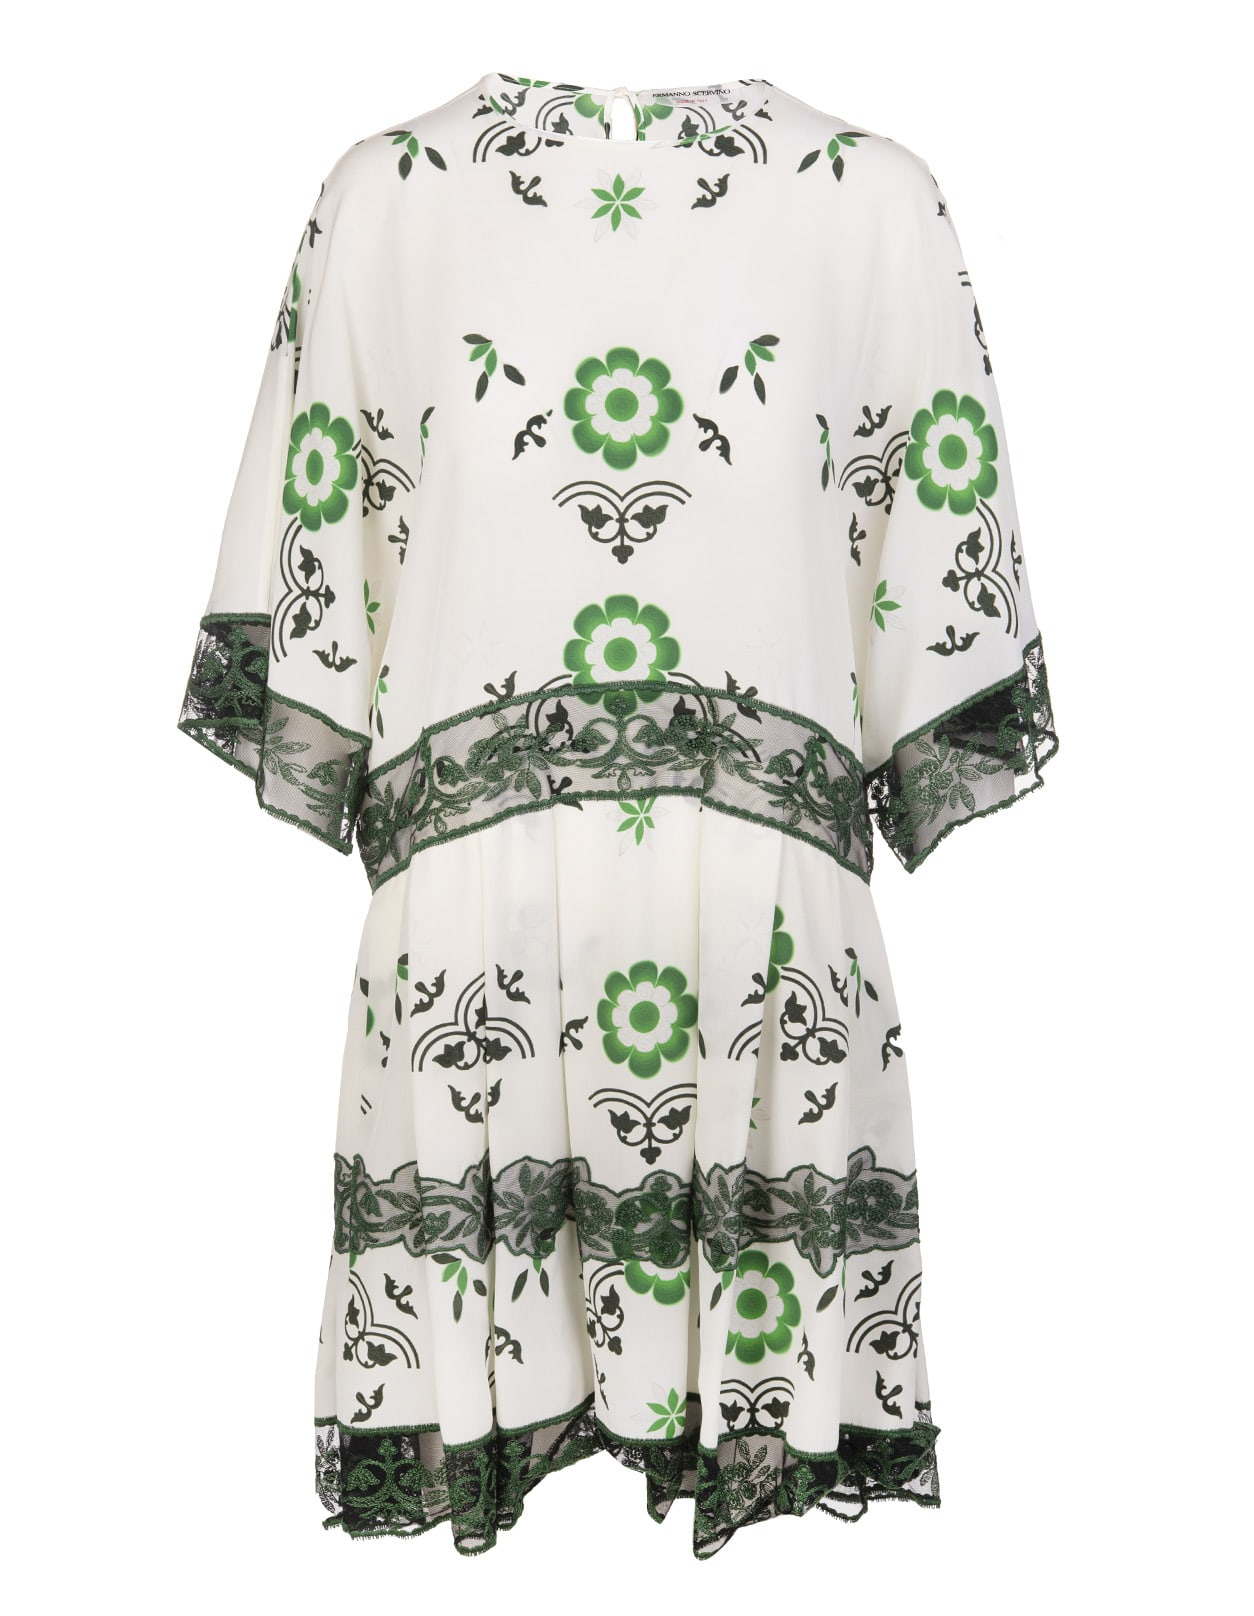 Ermanno Scervino White And Green Dress With Lace Inserts